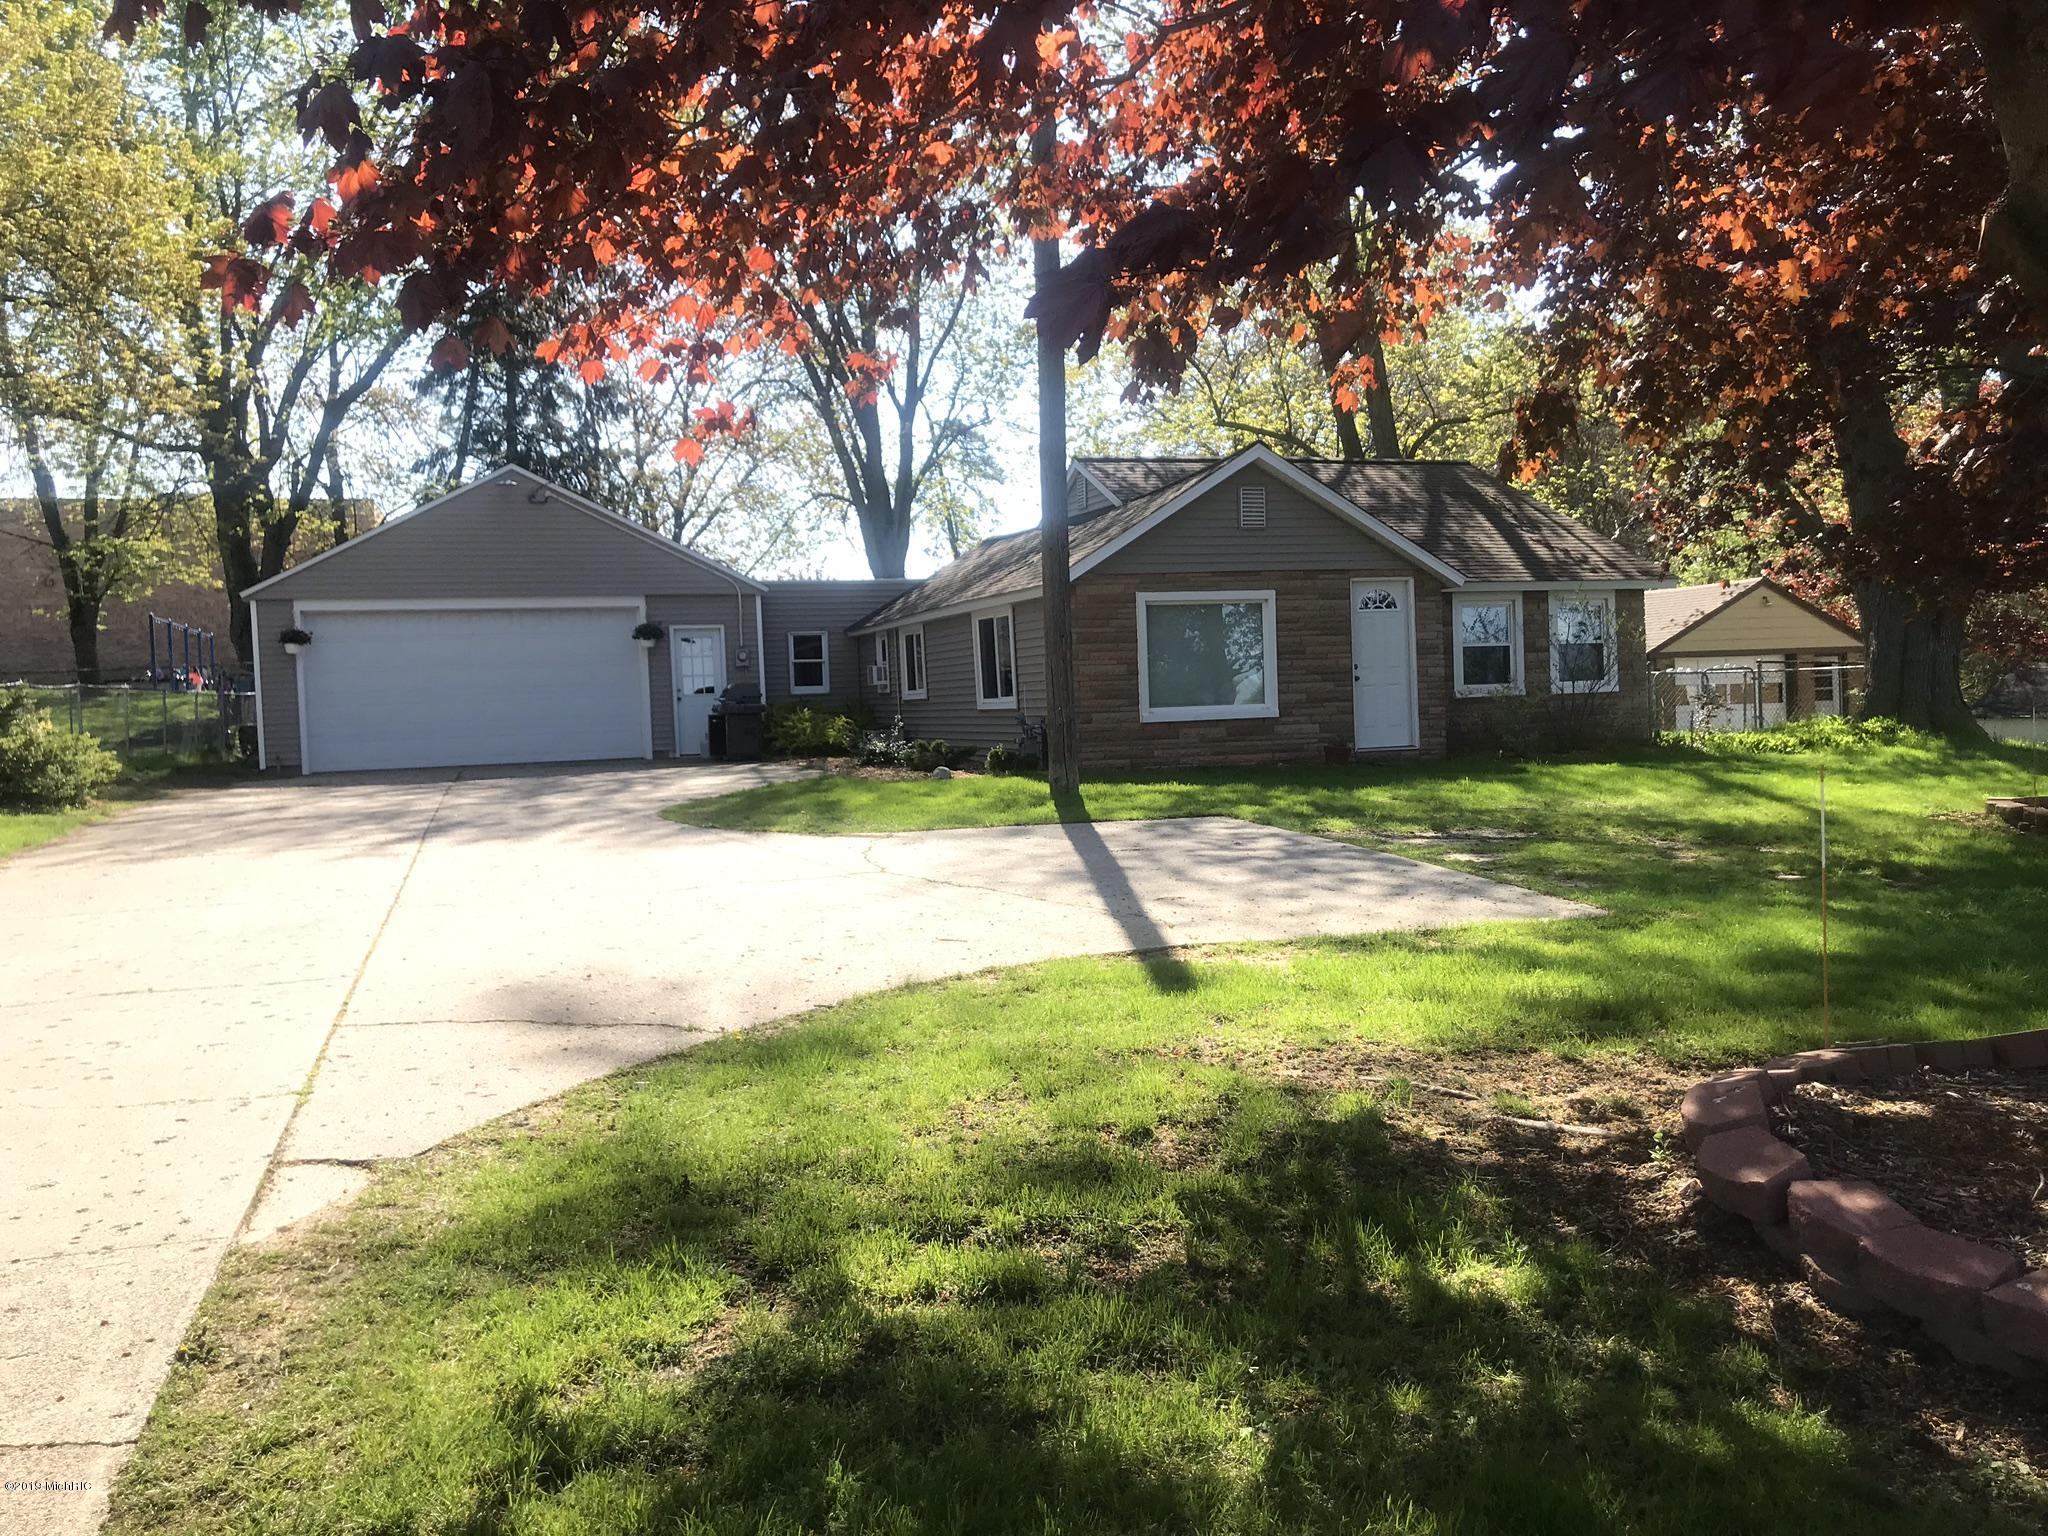 Page 2 of Homes for Sale in Zeeland Public School District